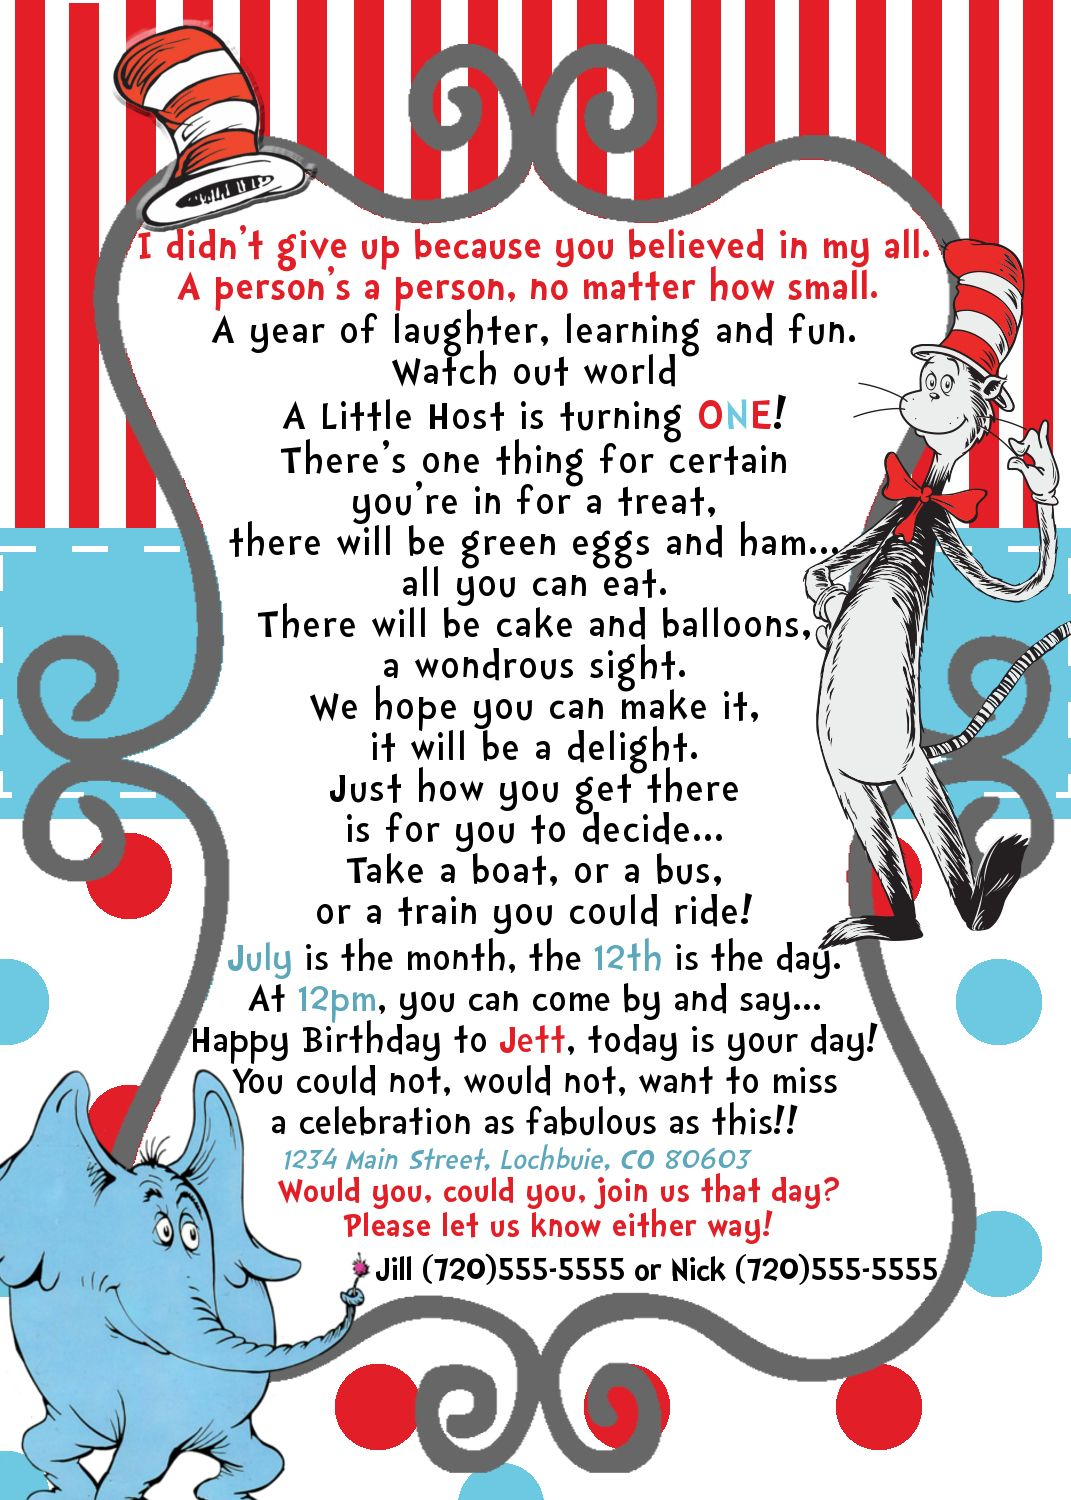 Dr Seuss / Horton Birthday Invite Wording good for a preemie or baby ...